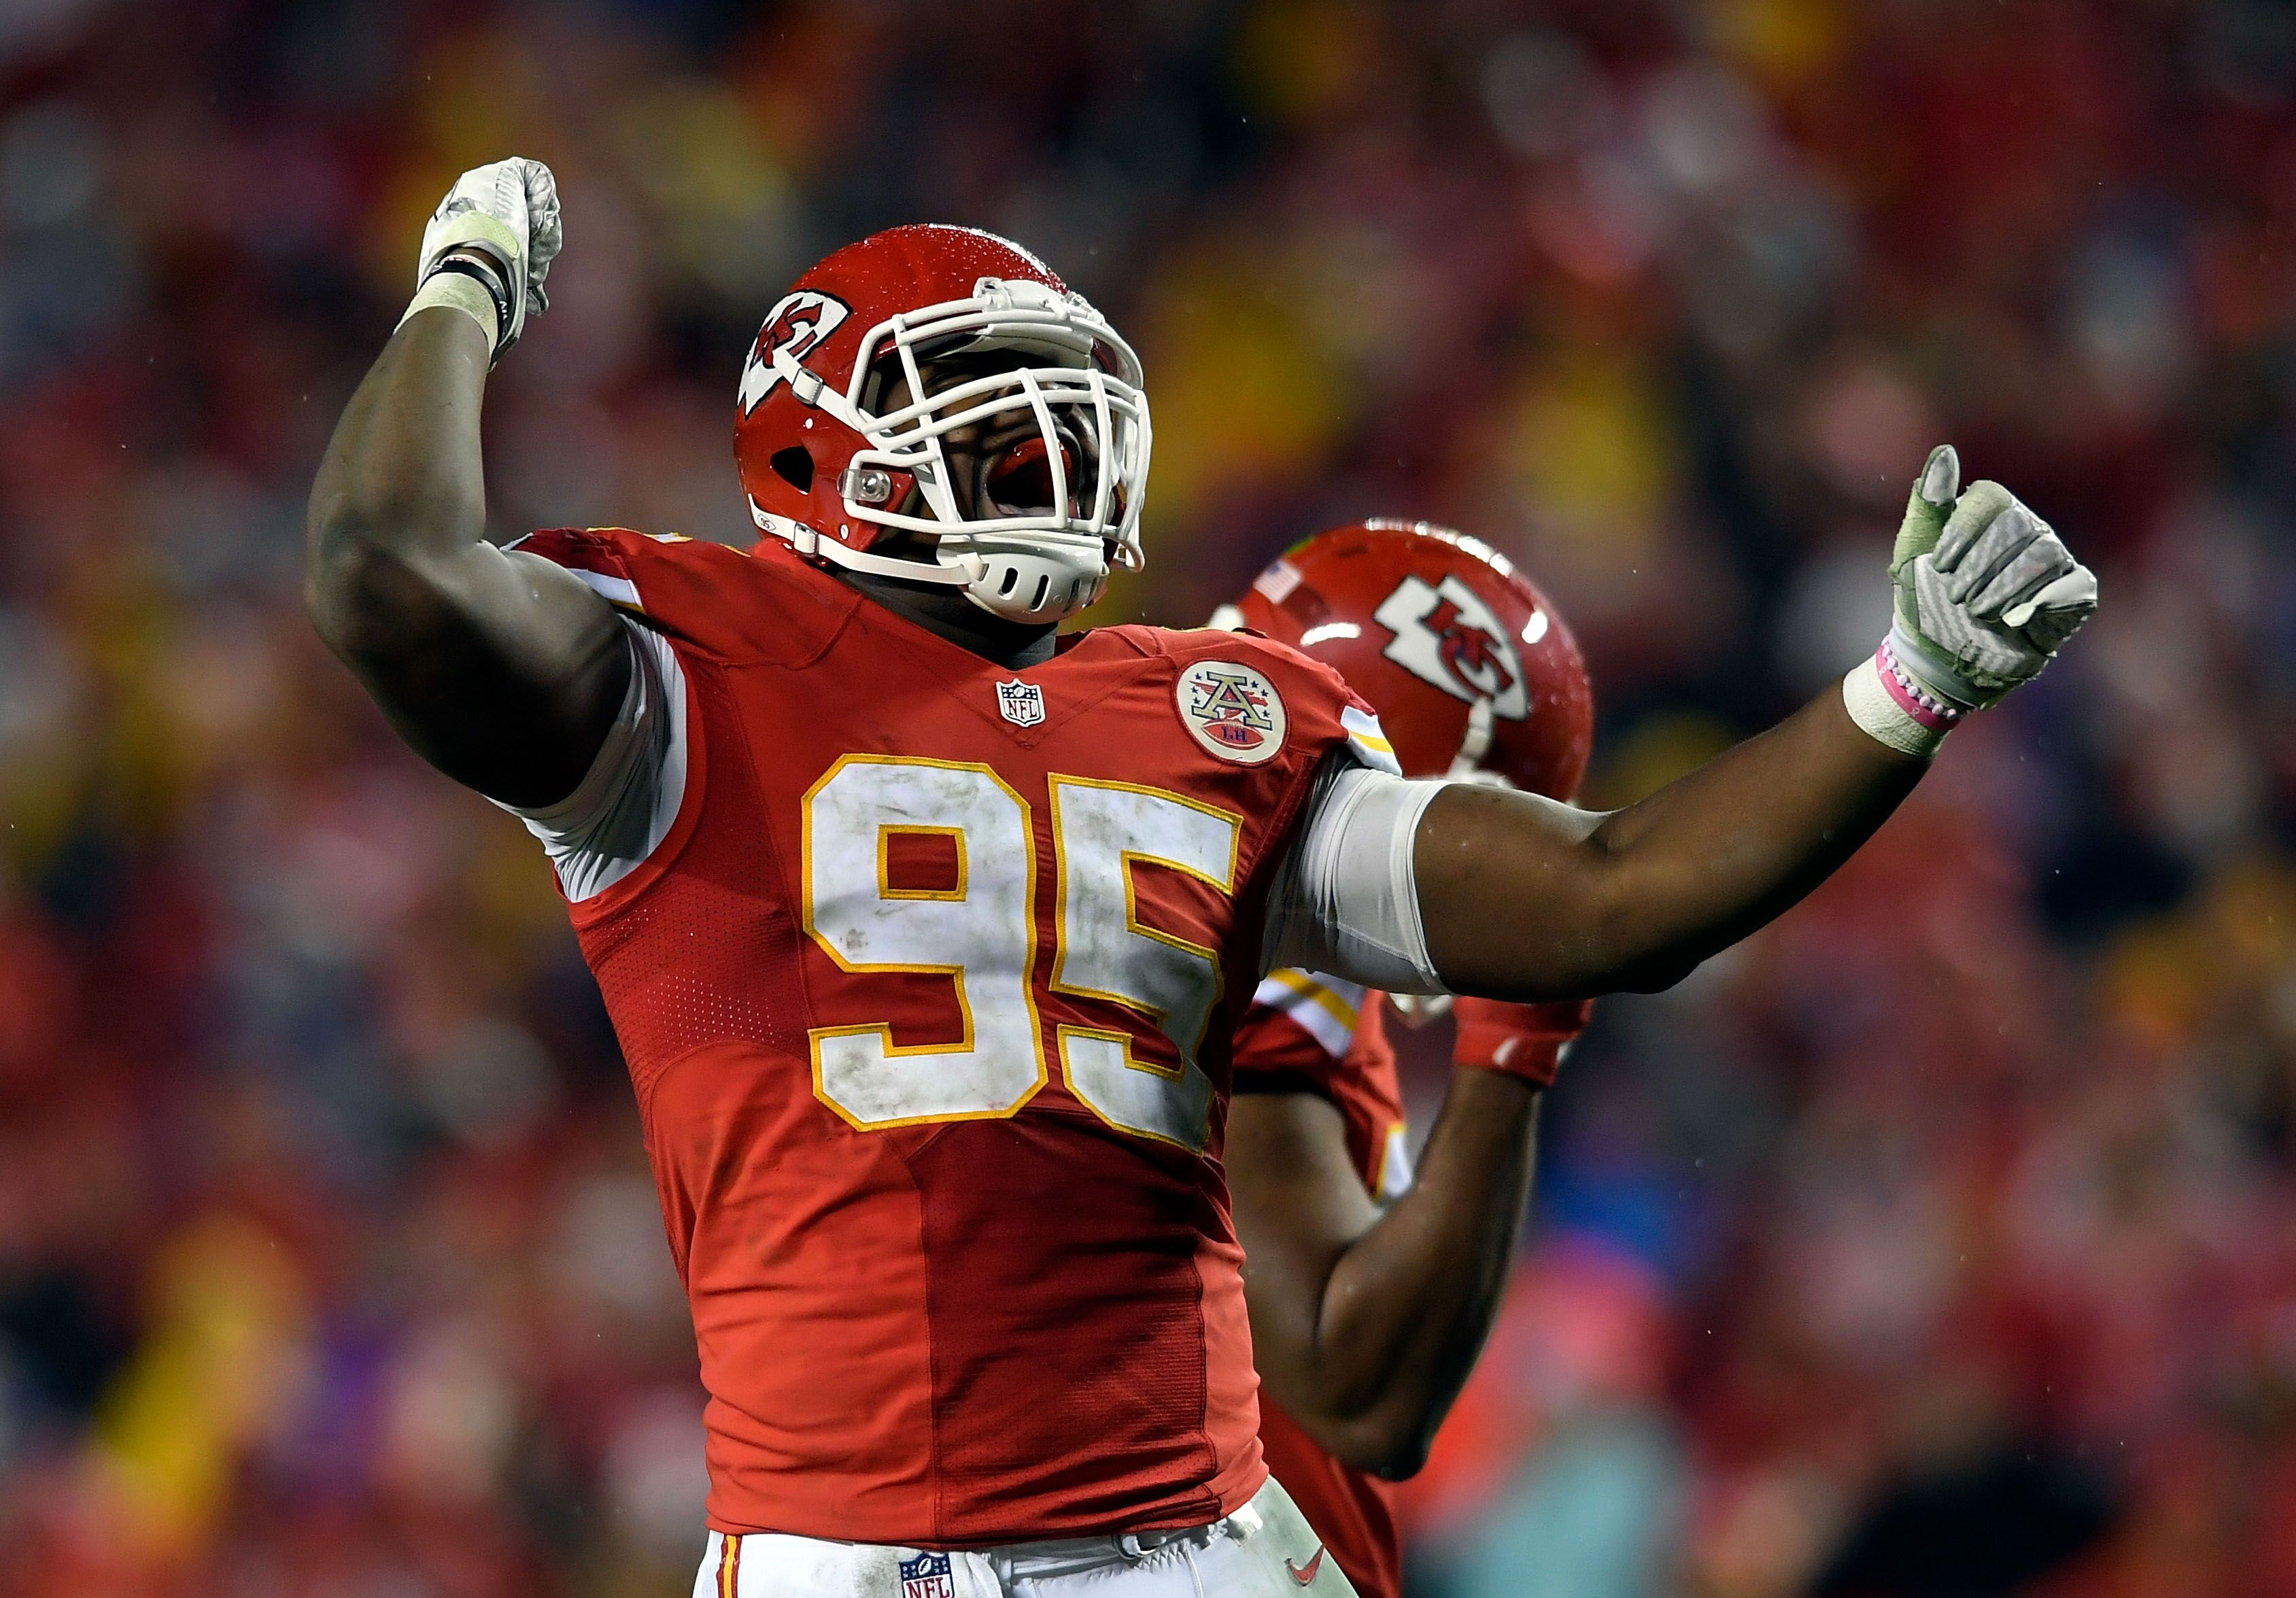 Chris Jones is an emerging defensive leader for the Kansas City Chiefs